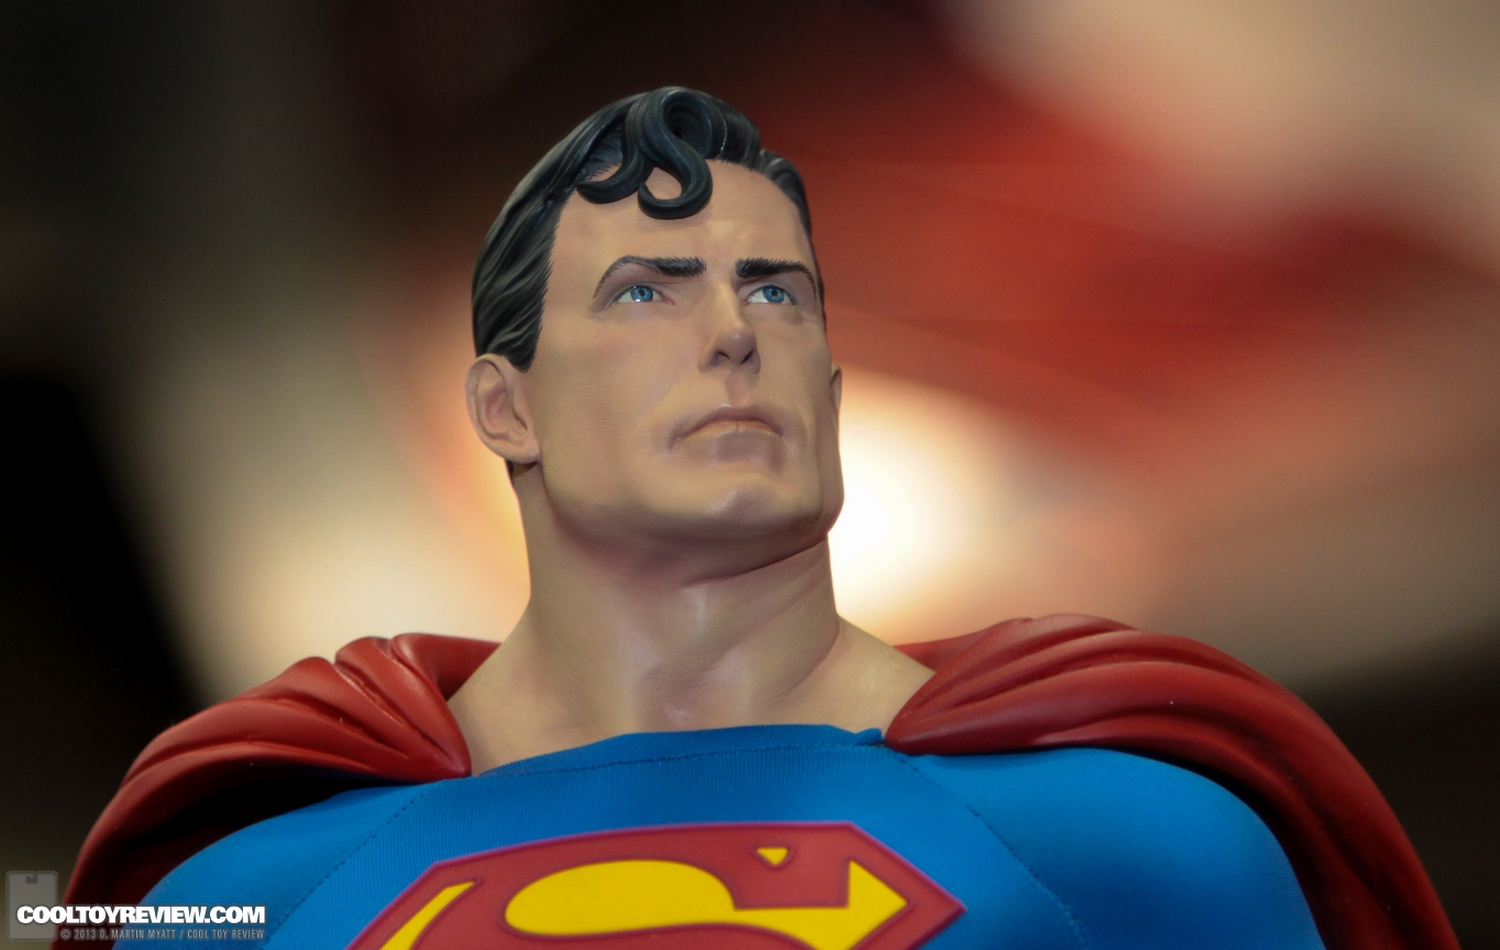 [Sideshow] Superman - Premium Format Figure - LANÇADO!!!! - Página 23 SDCC_2013_Sideshow_Collectibles_Thursday-075